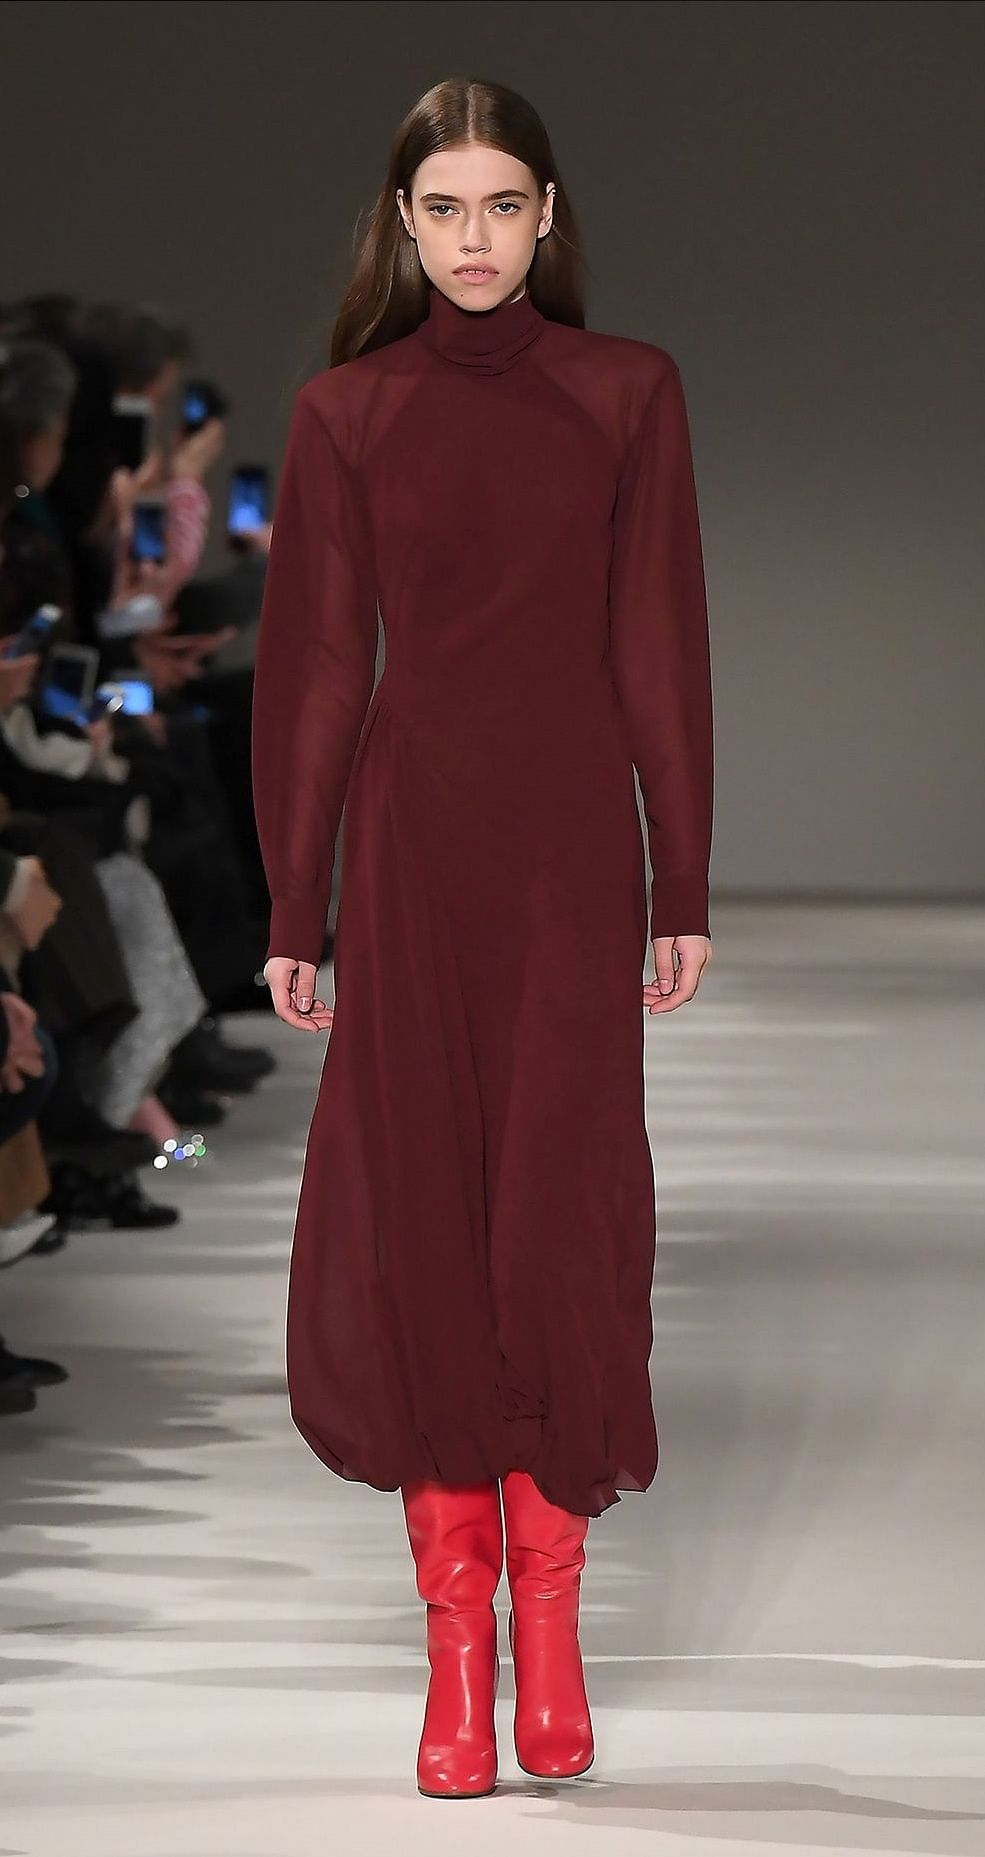 Items for Victoria Beckham's new budget collection cater to women from extra small to US plus size 3X.